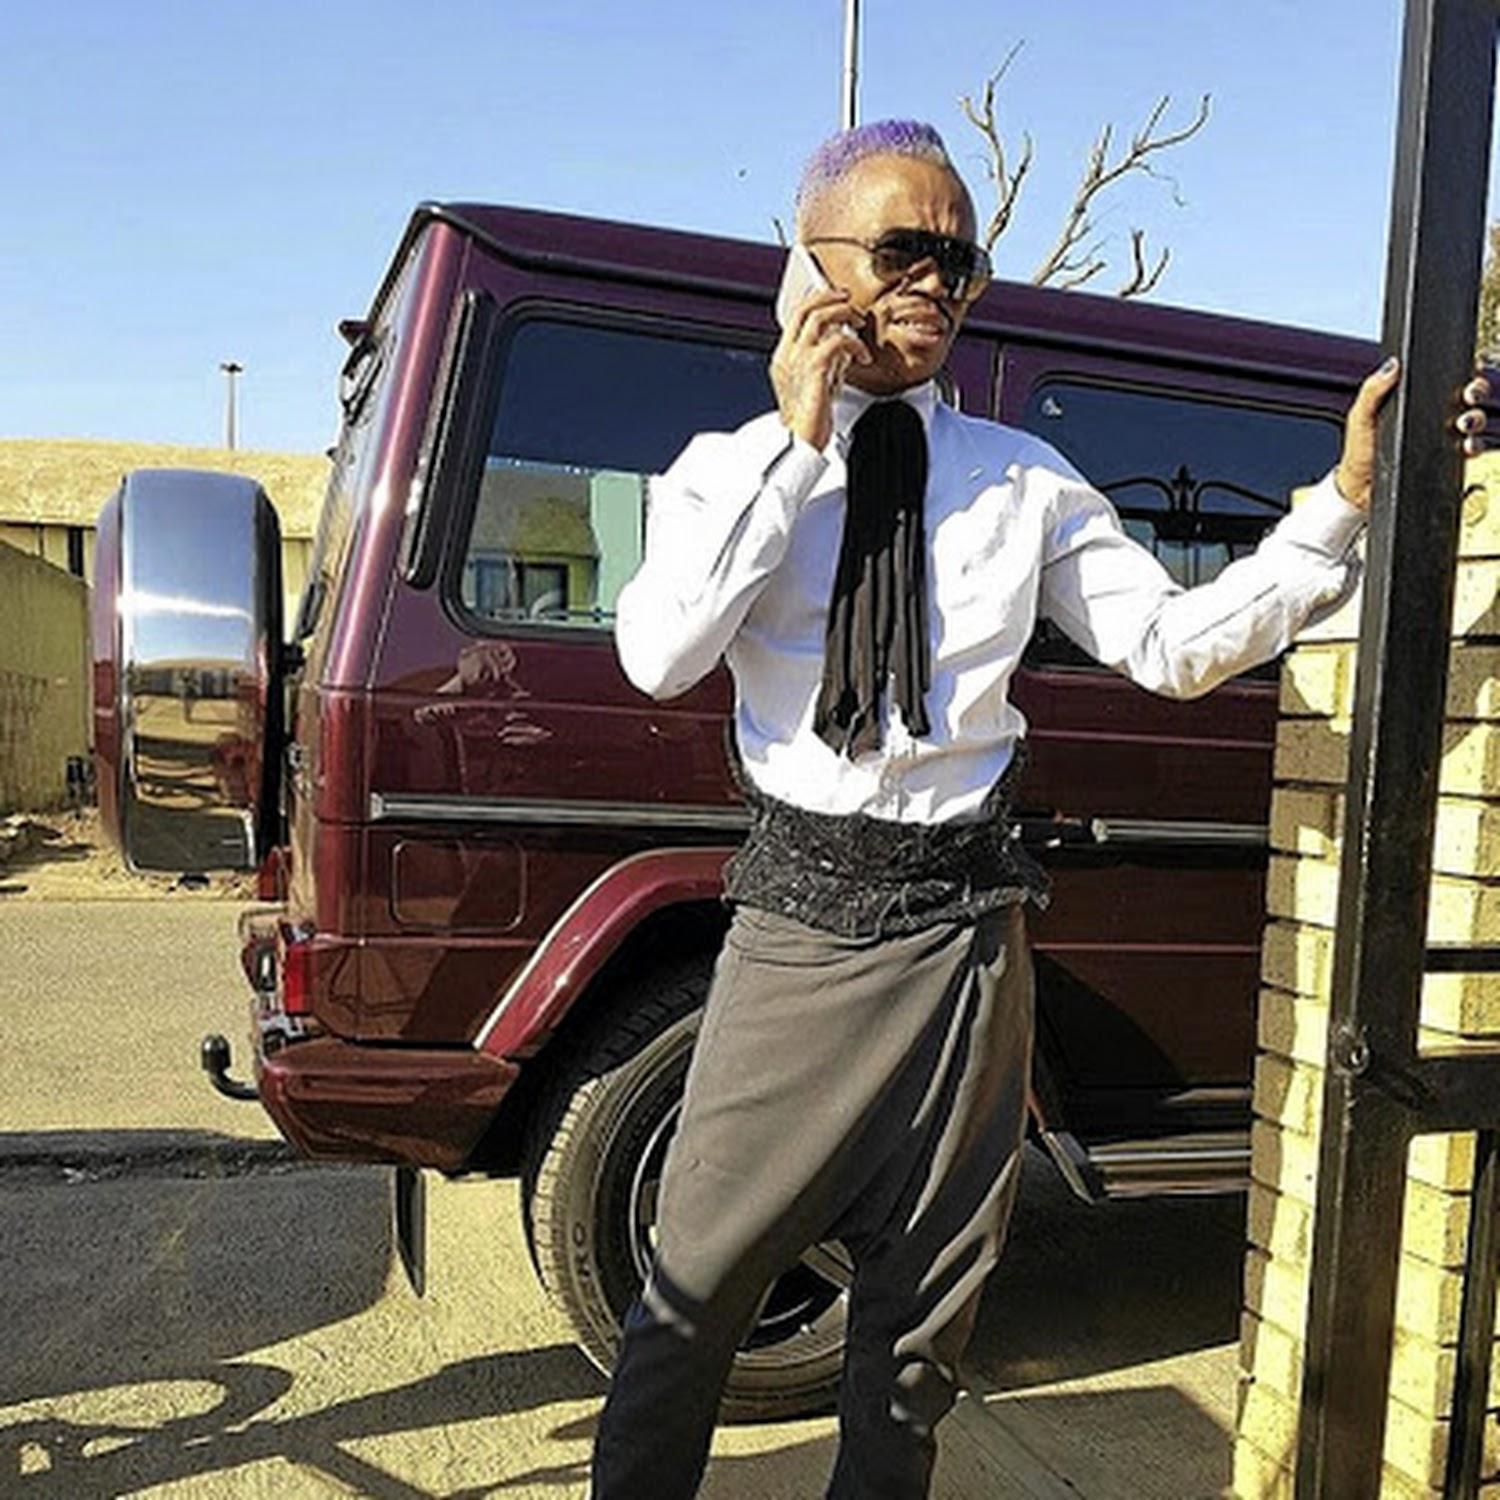 Somizi S R2m Vehicle Hijacked Its Driver Robbed Of R21000